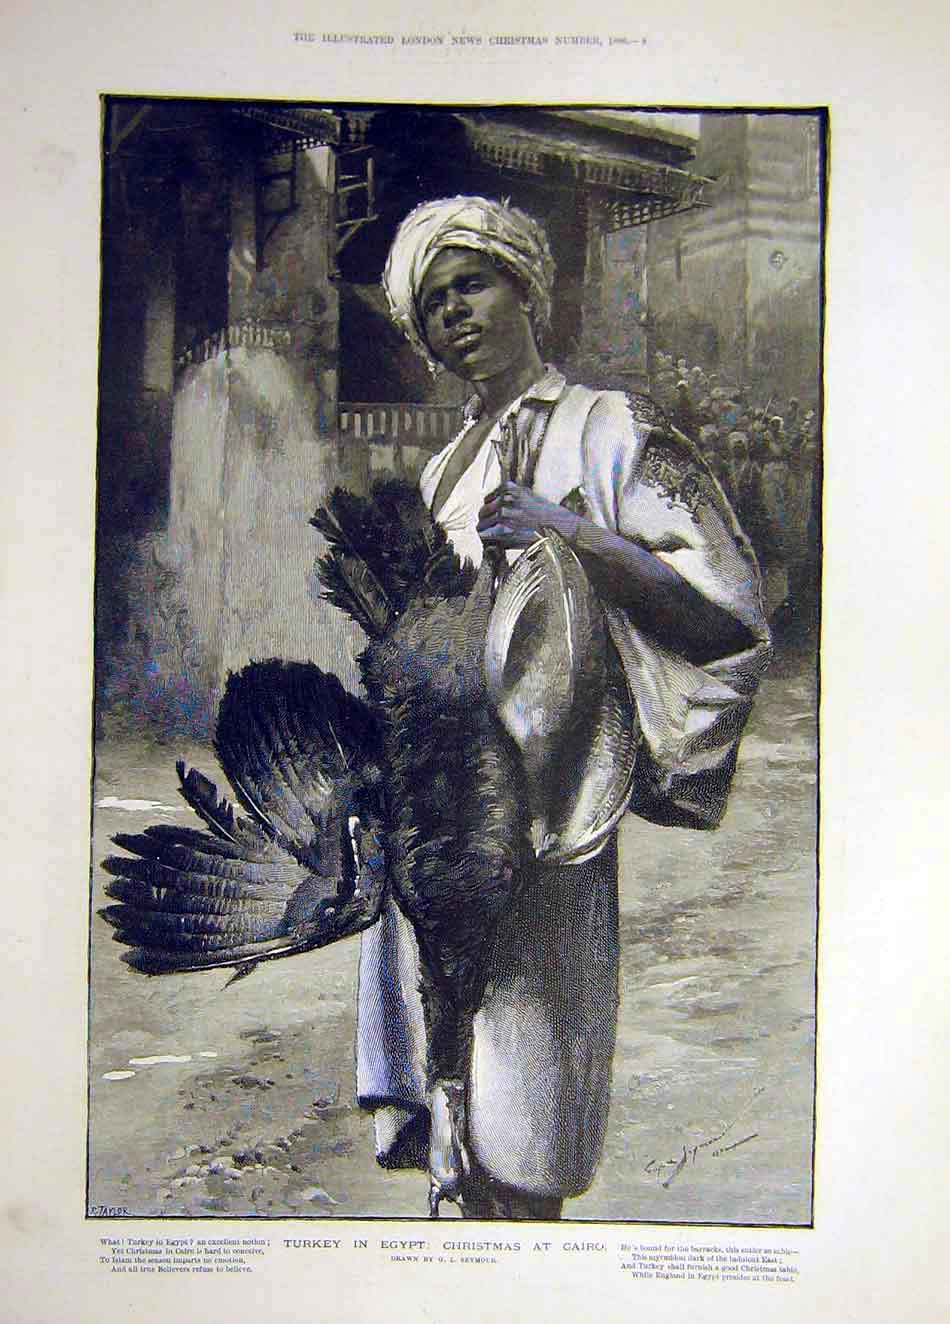 Print 1886 Turkey Egypt Christmas Cairo Seymour 267921 Old Original